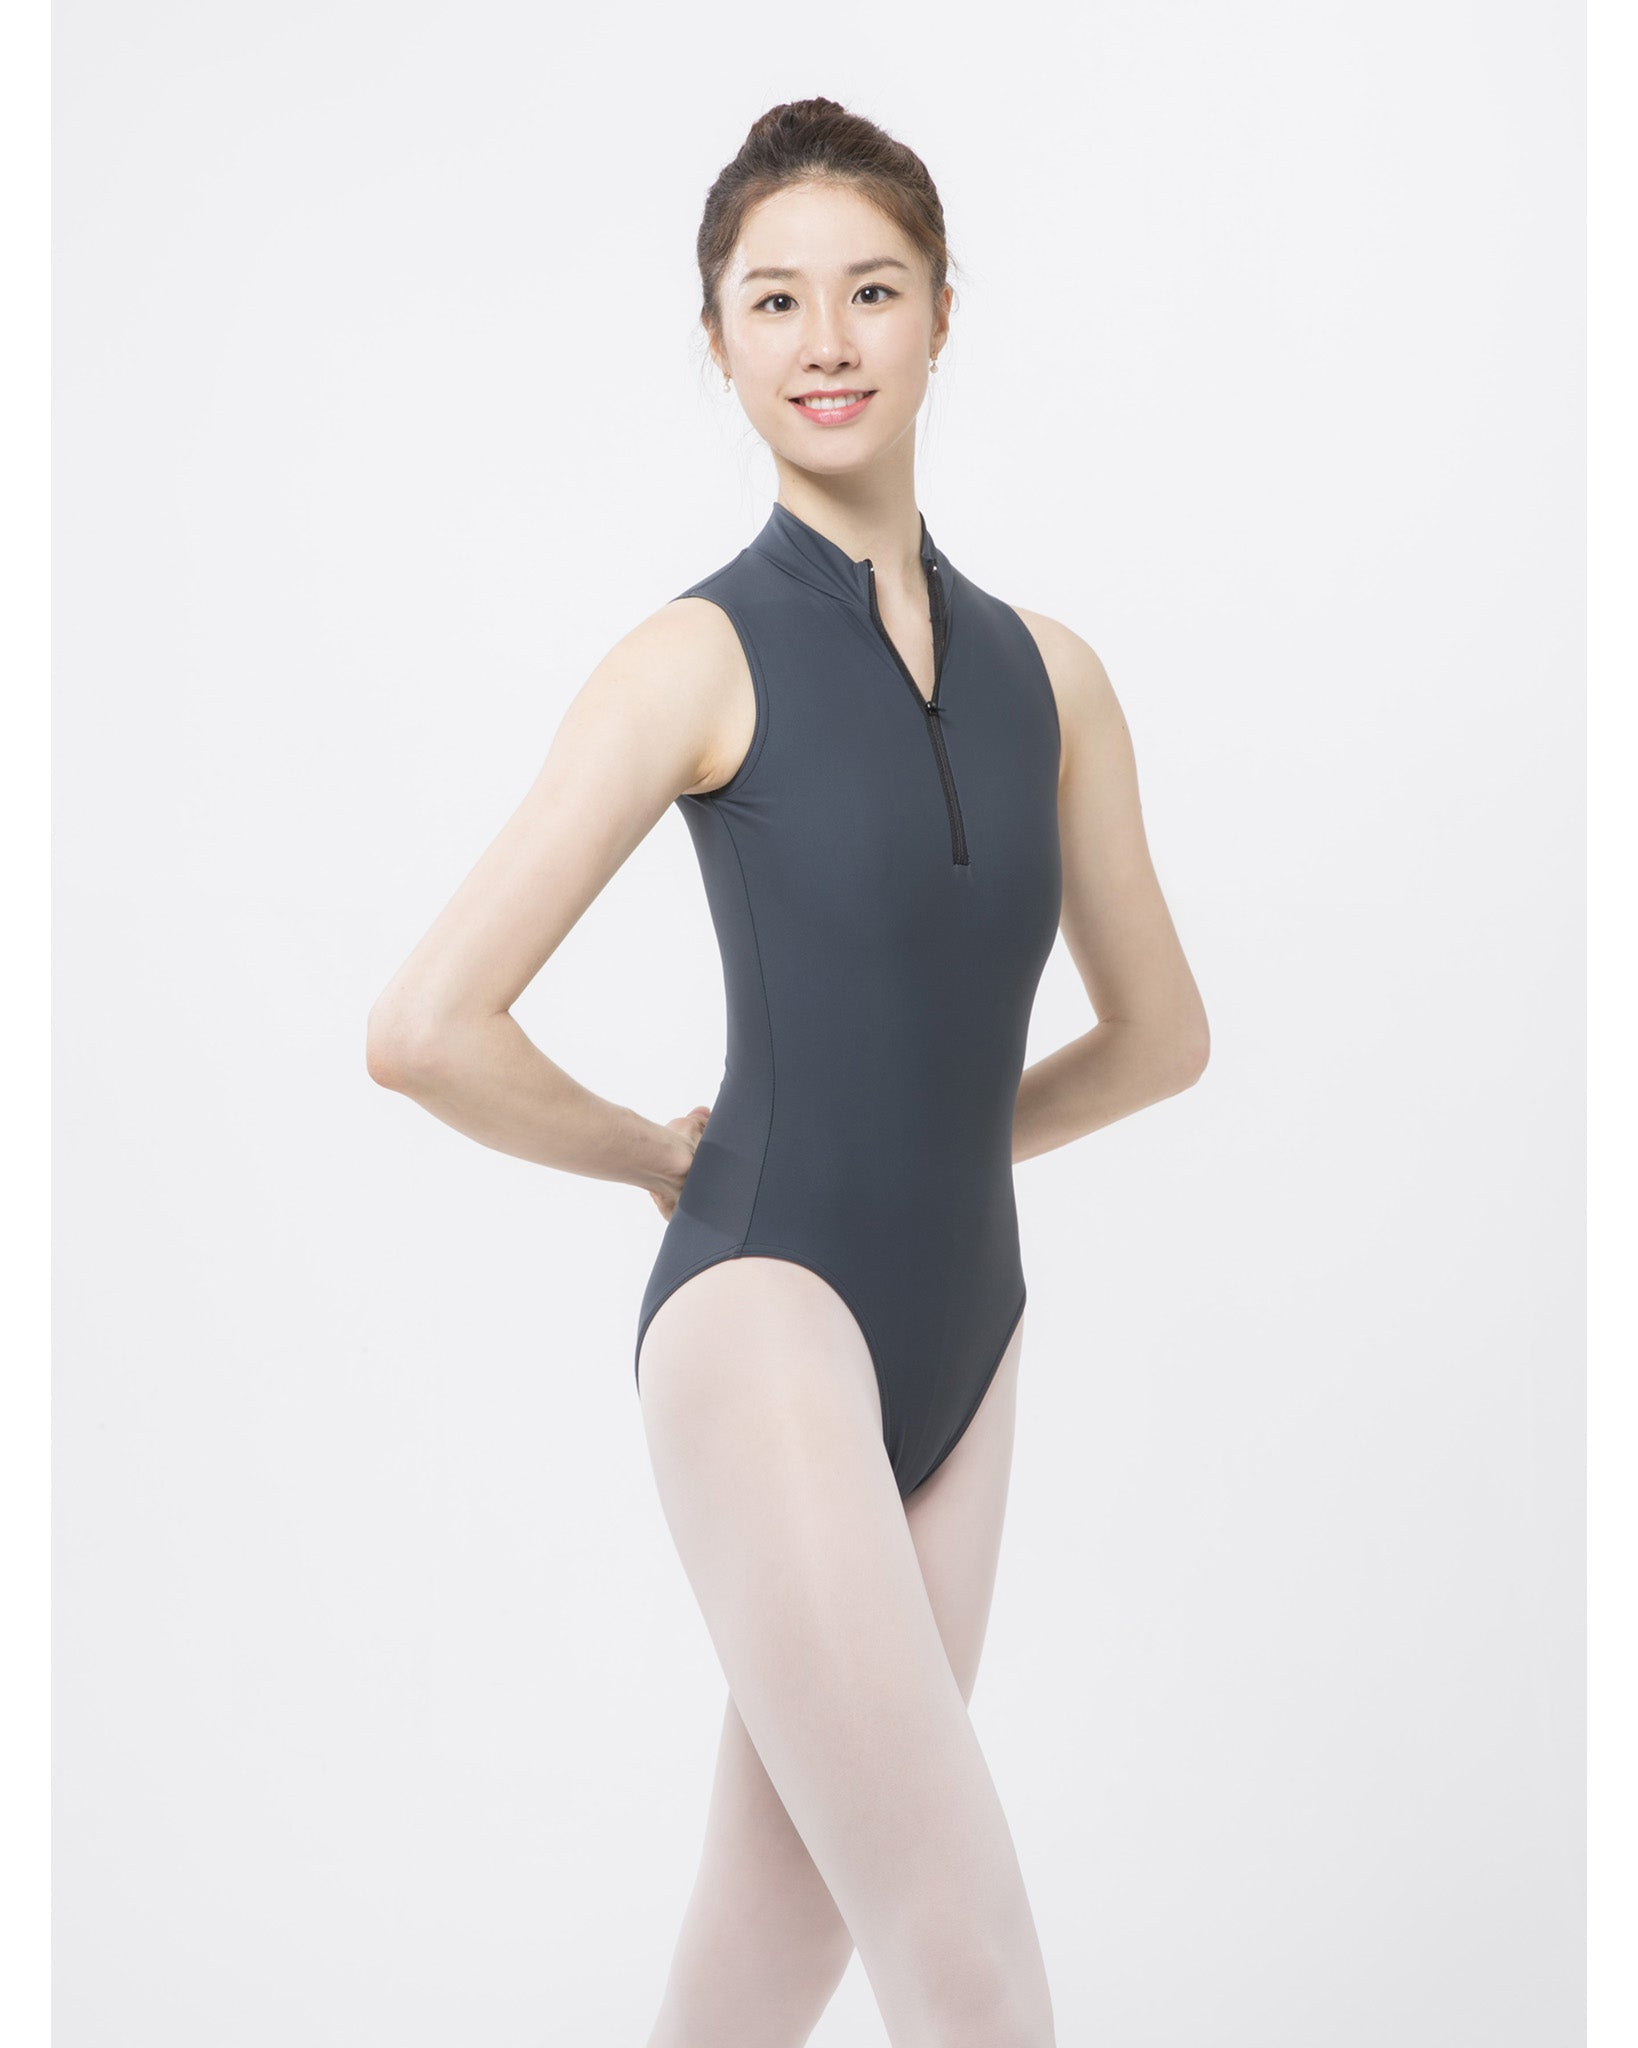 Sonata Classic High Neck Zip Up Leotard - SL4474 Womens - Dancewear - Bodysuits & Leotards - Dancewear Centre Canada